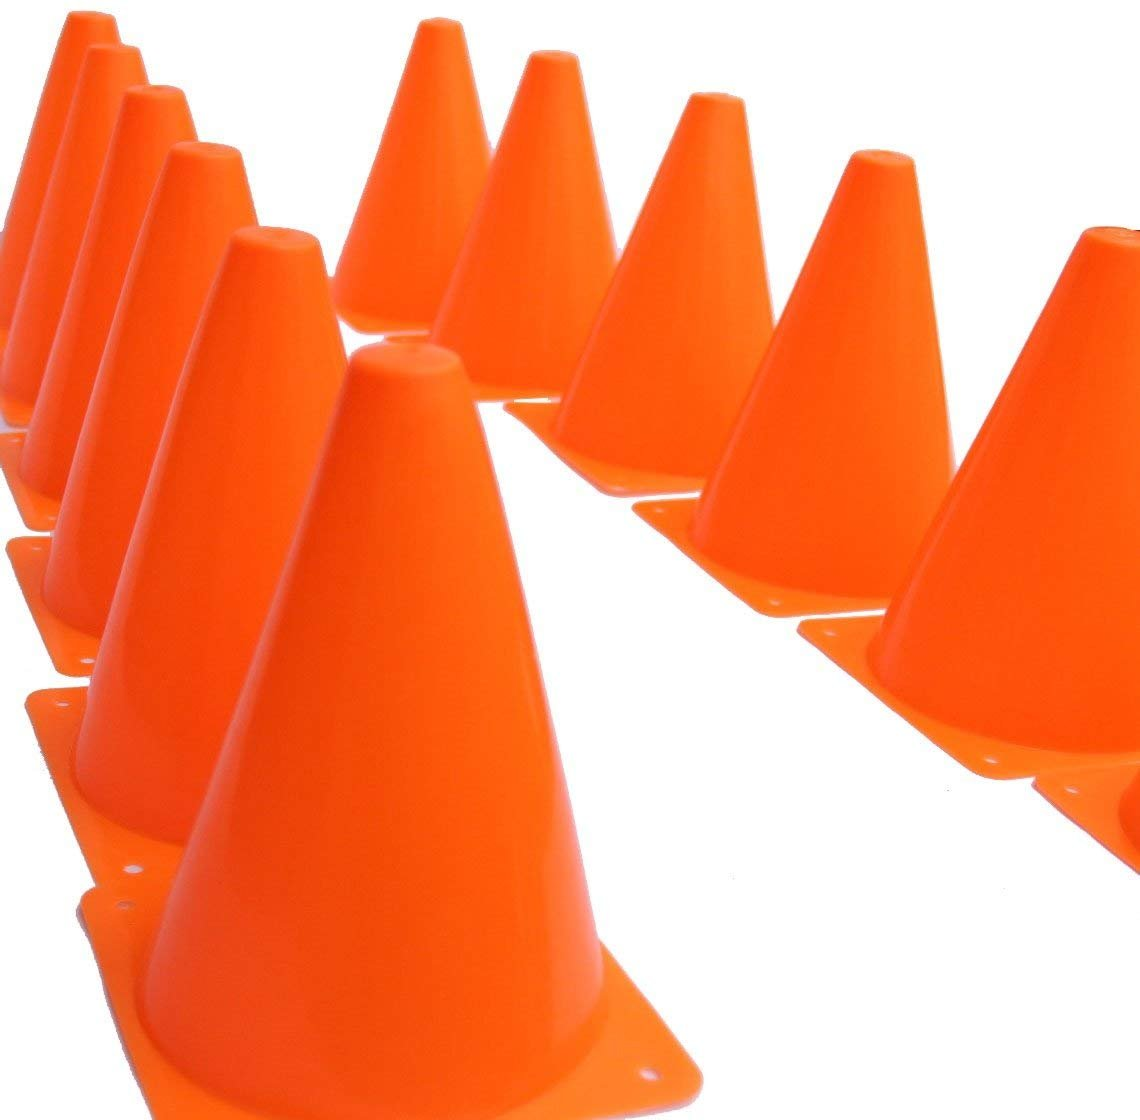 "Dazzling Toys 7 Inch Plastic Traffic Cones - 6 Pack of 7"" Multipurpose Construction Theme Party Sports Activity Cones for Kids Outdoor and Indoor Gaming and Festive Events"